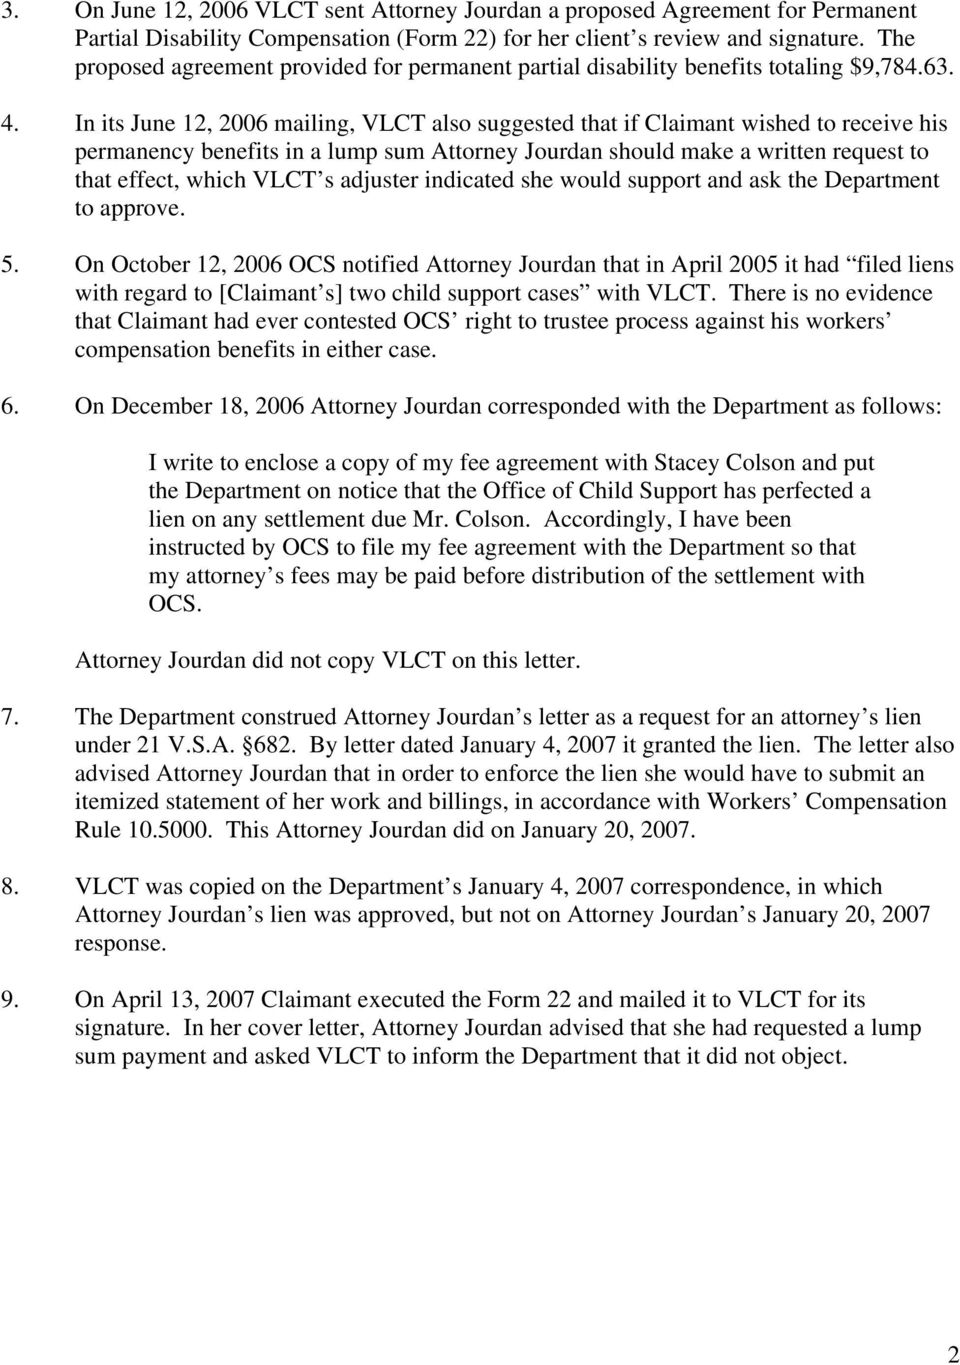 In its June 12, 2006 mailing, VLCT also suggested that if Claimant wished to receive his permanency benefits in a lump sum Attorney Jourdan should make a written request to that effect, which VLCT s